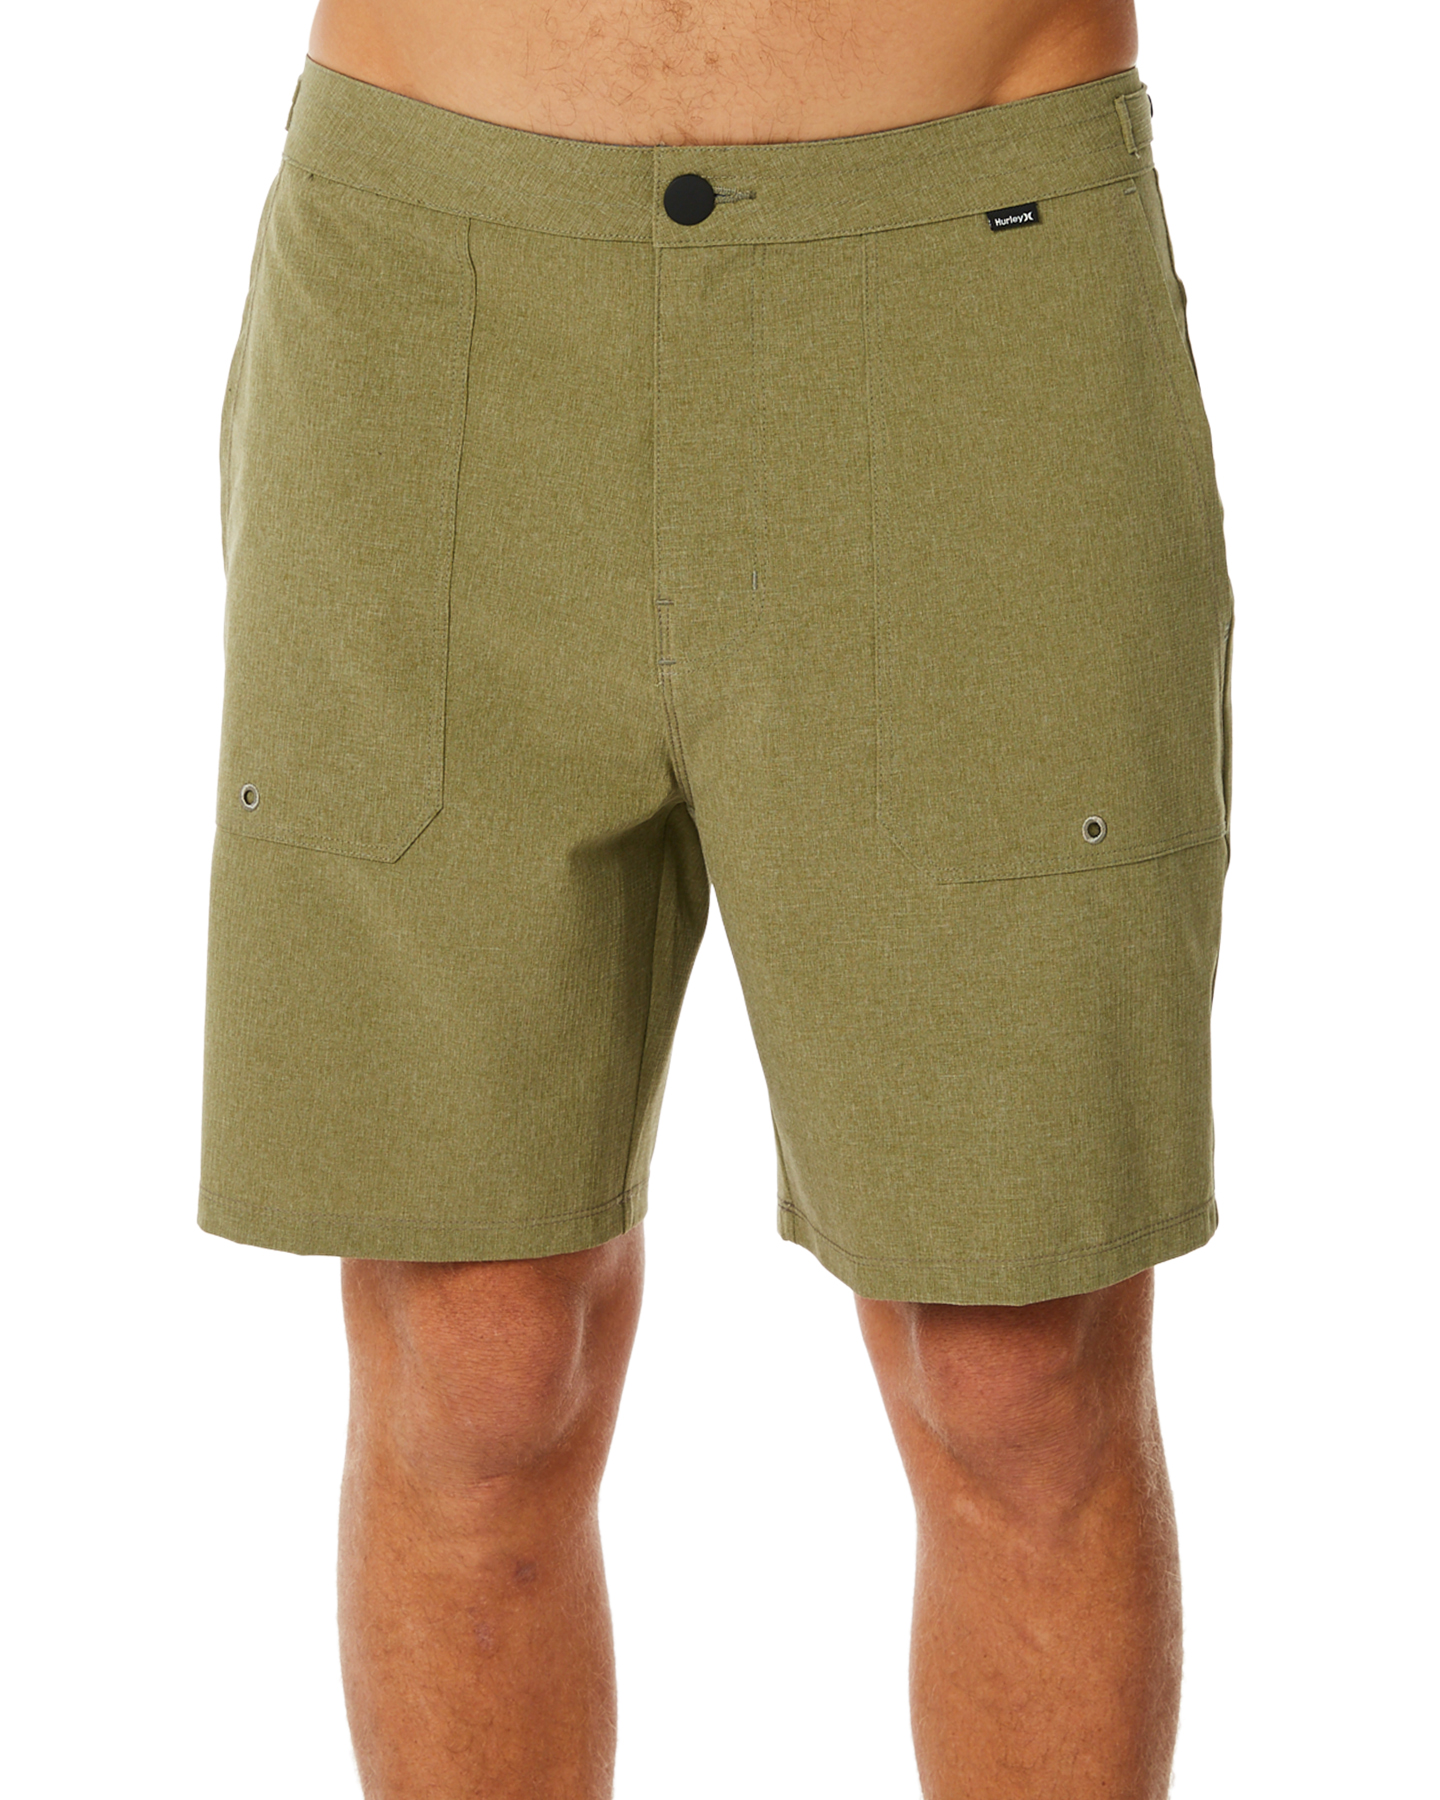 b9a26058e1 Hurley Phantom Coastline 18 Mens Short - Olive Canvas | SurfStitch